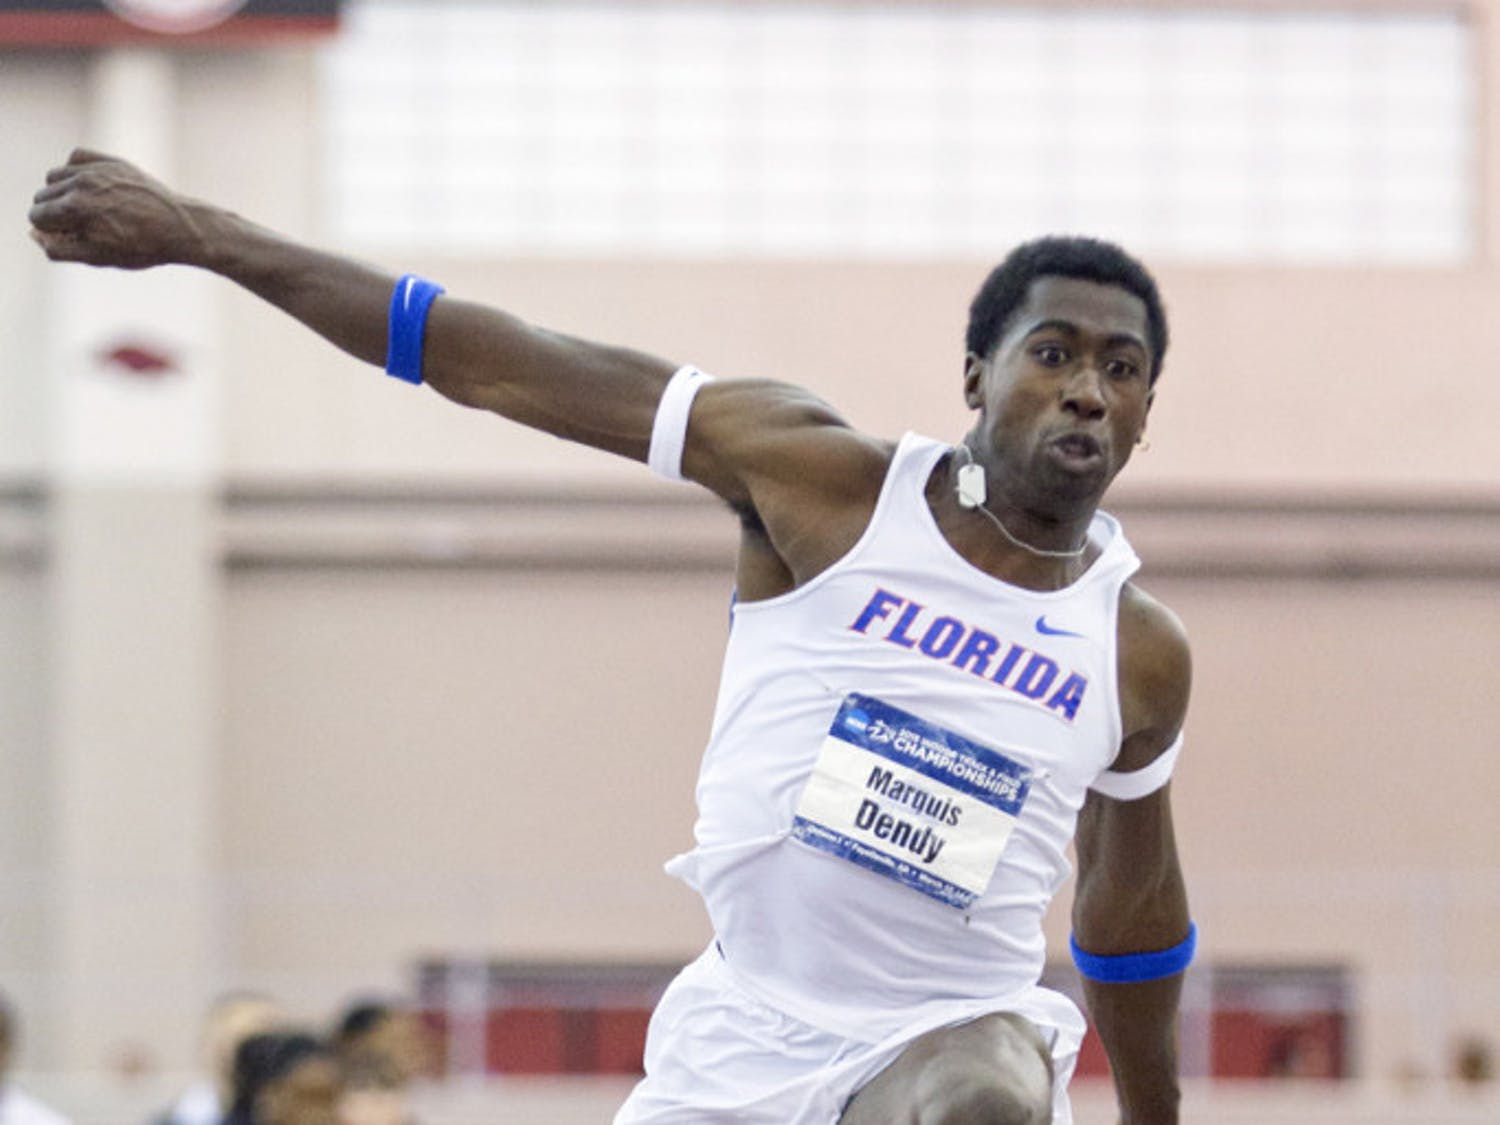 Marquis Dendy competes in the triple jump during the 2015 NCAA Indoor Championships on March 14 in Fayetteville, Arkansas.